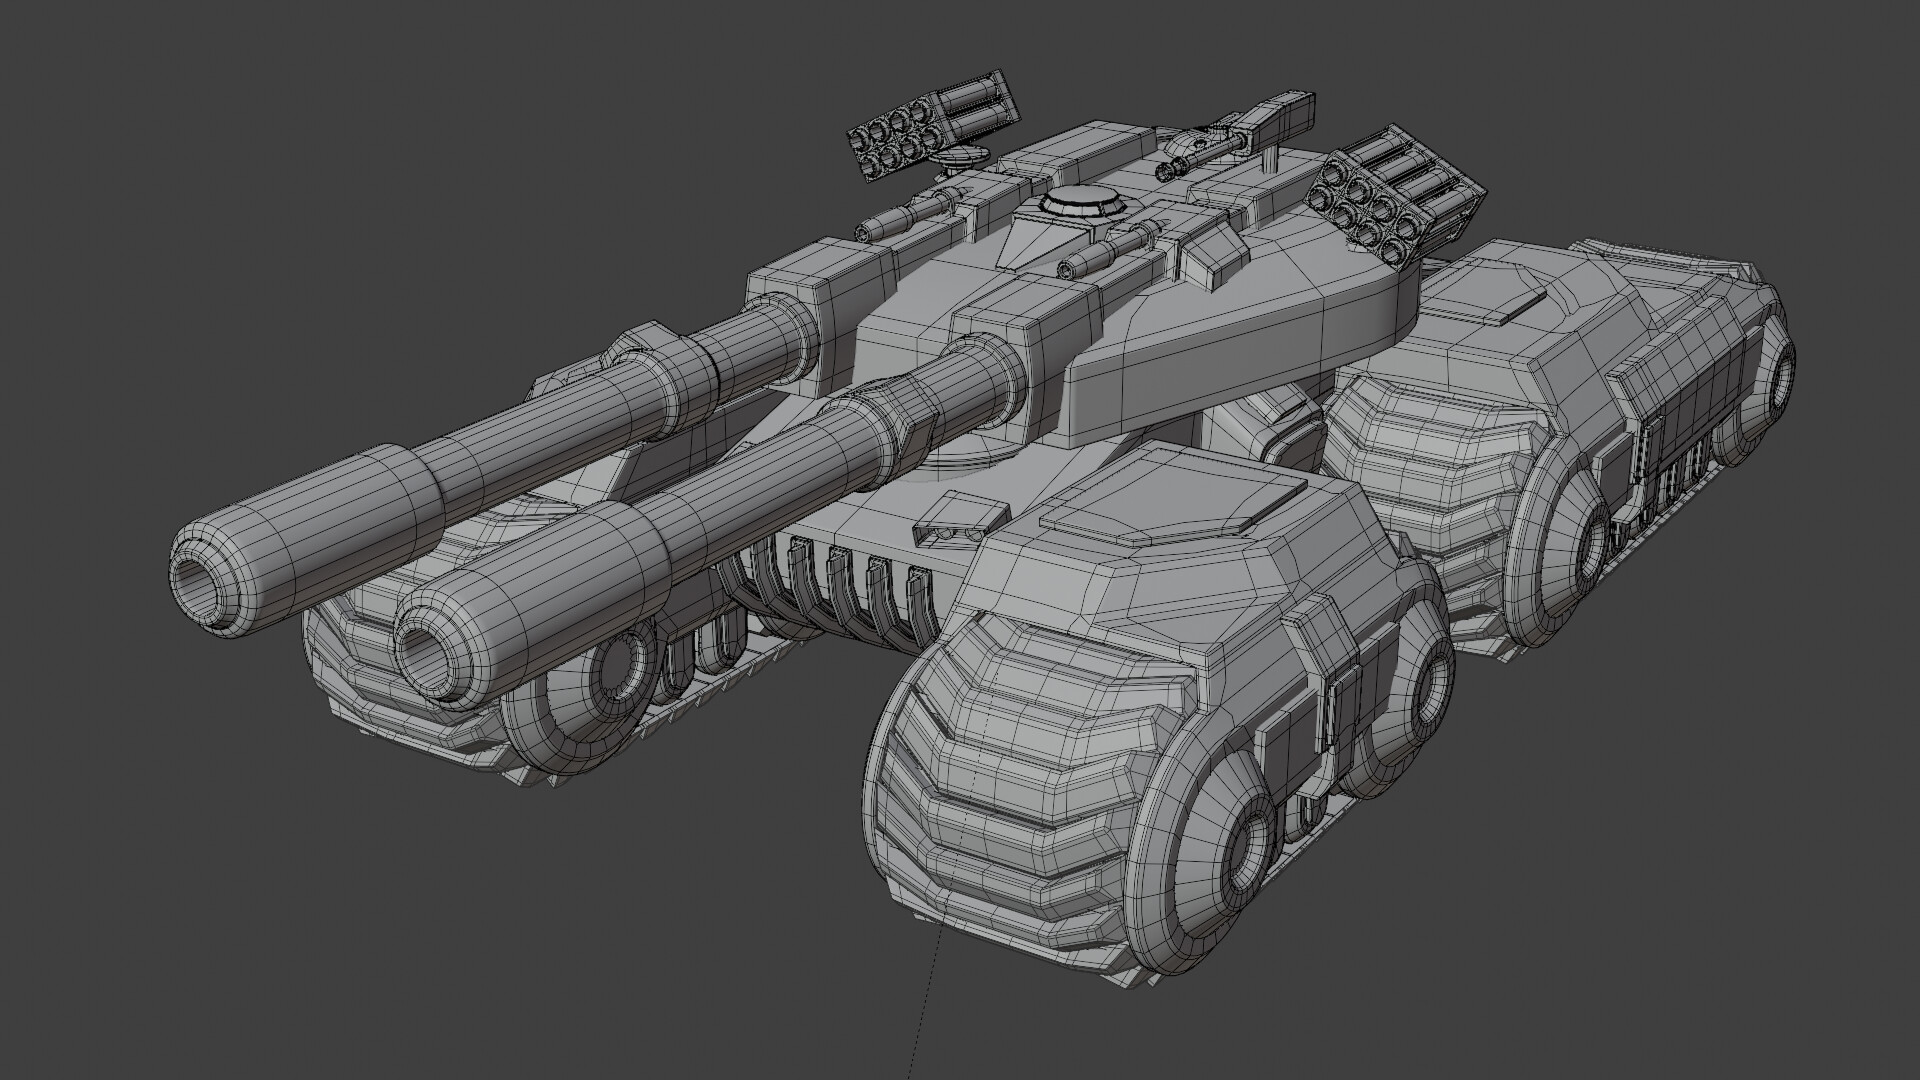 This wire frame shows the relatively low detail of the tank model.